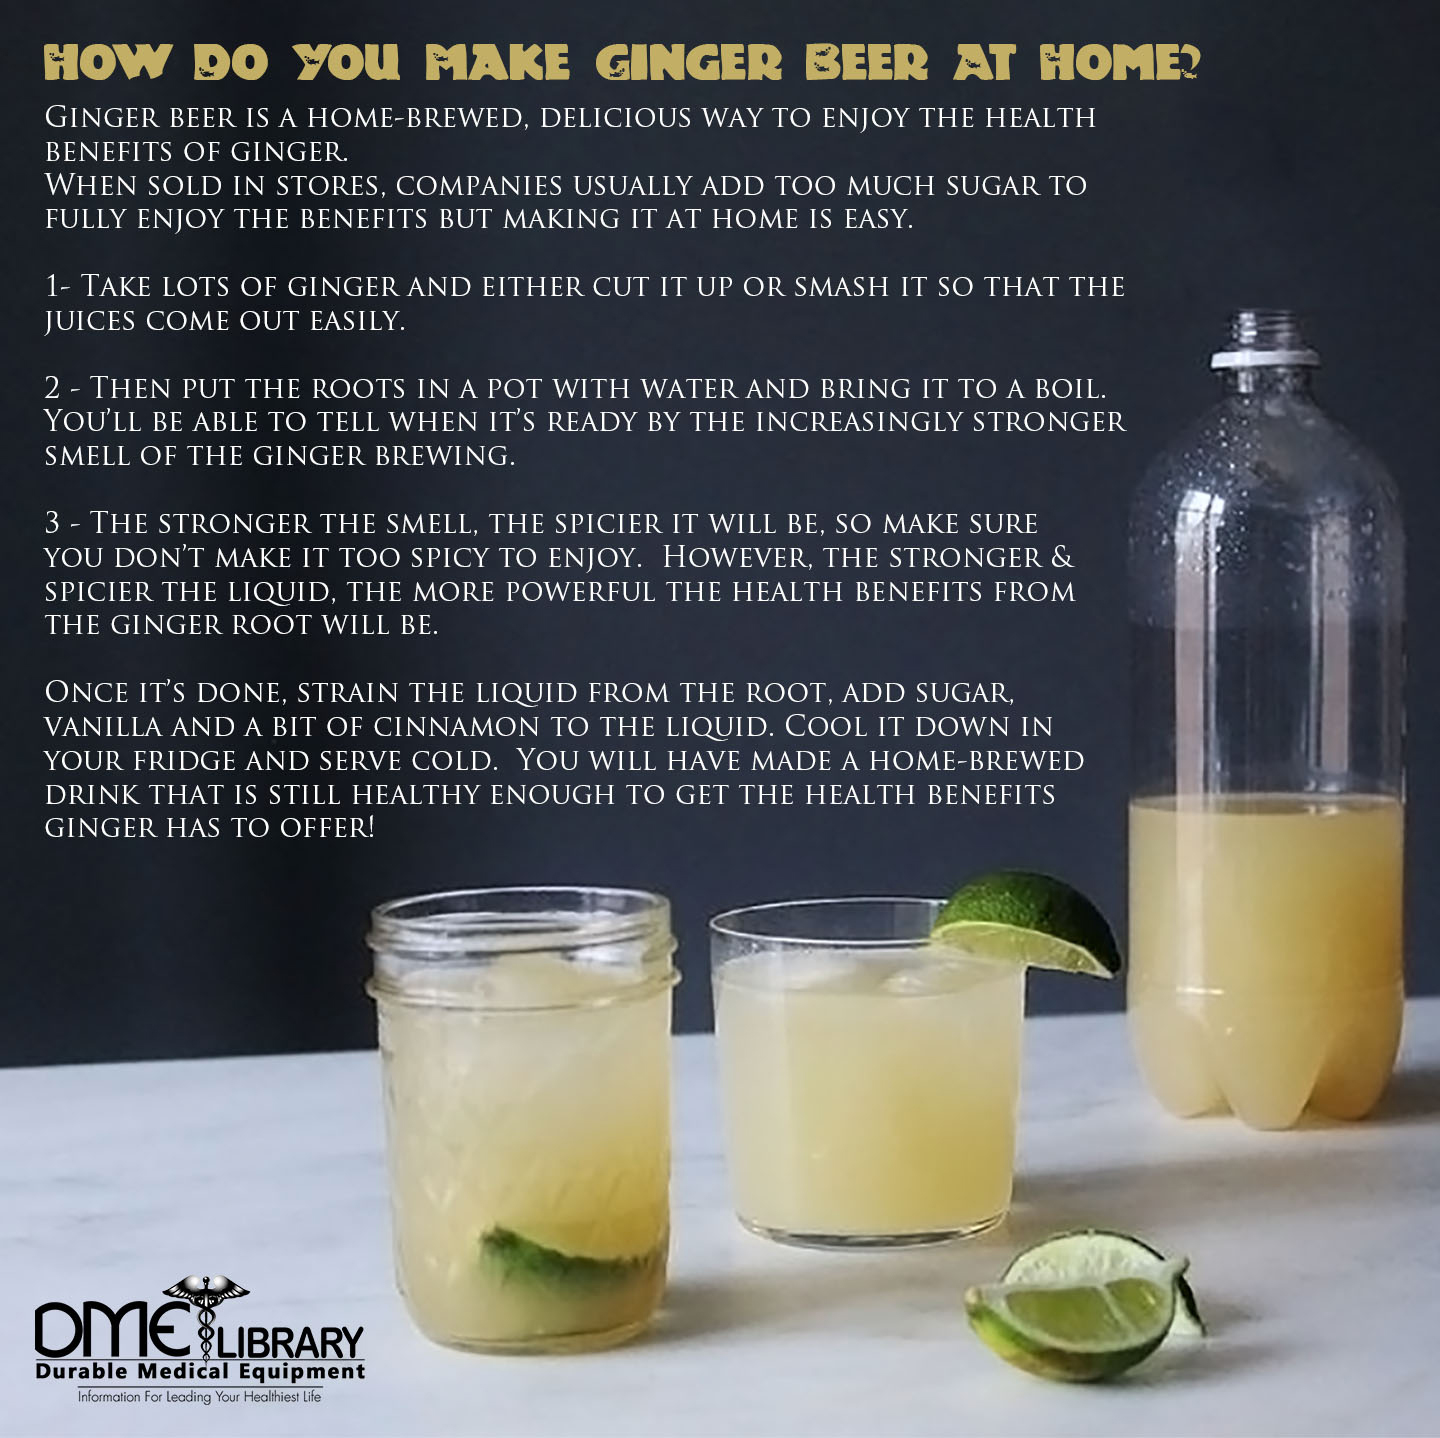 How Do You Make Ginger Beer At Home